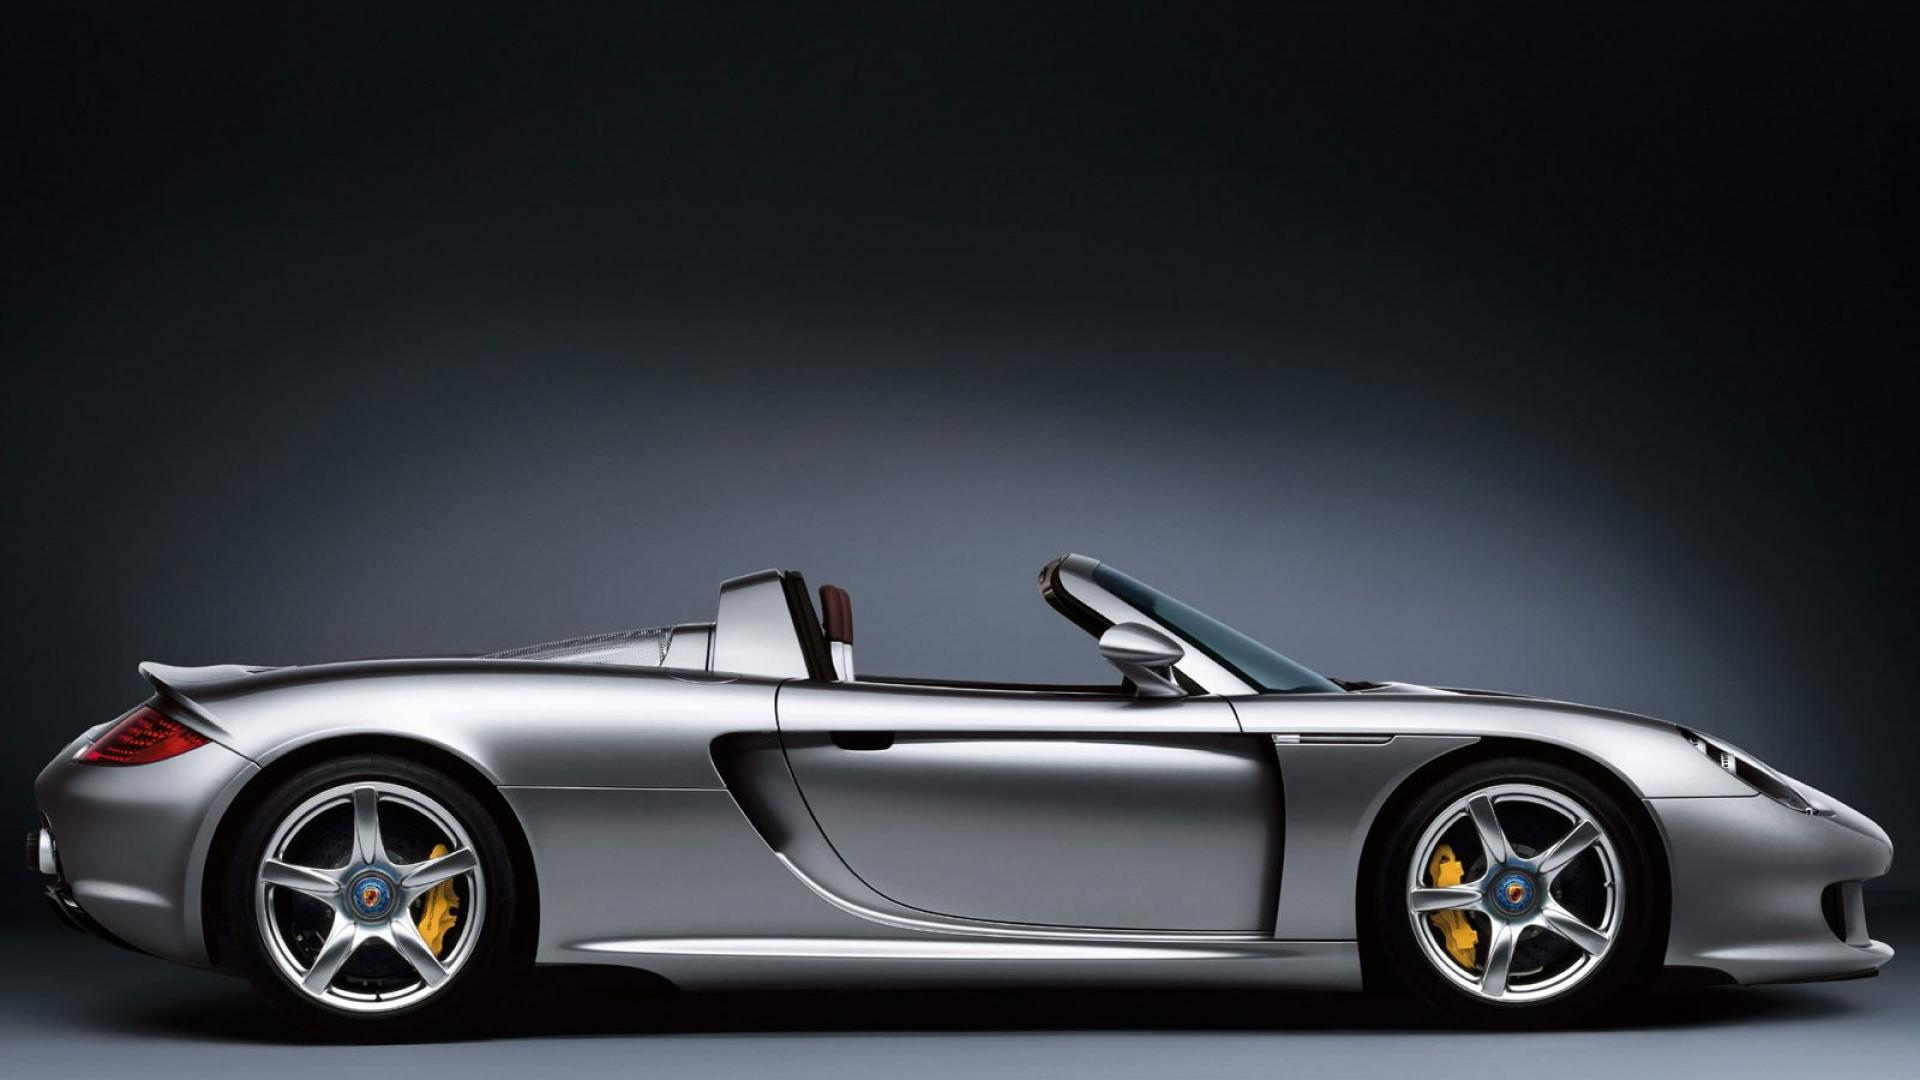 porsche carrera gt images porsche carrera gt hd wallpaper and